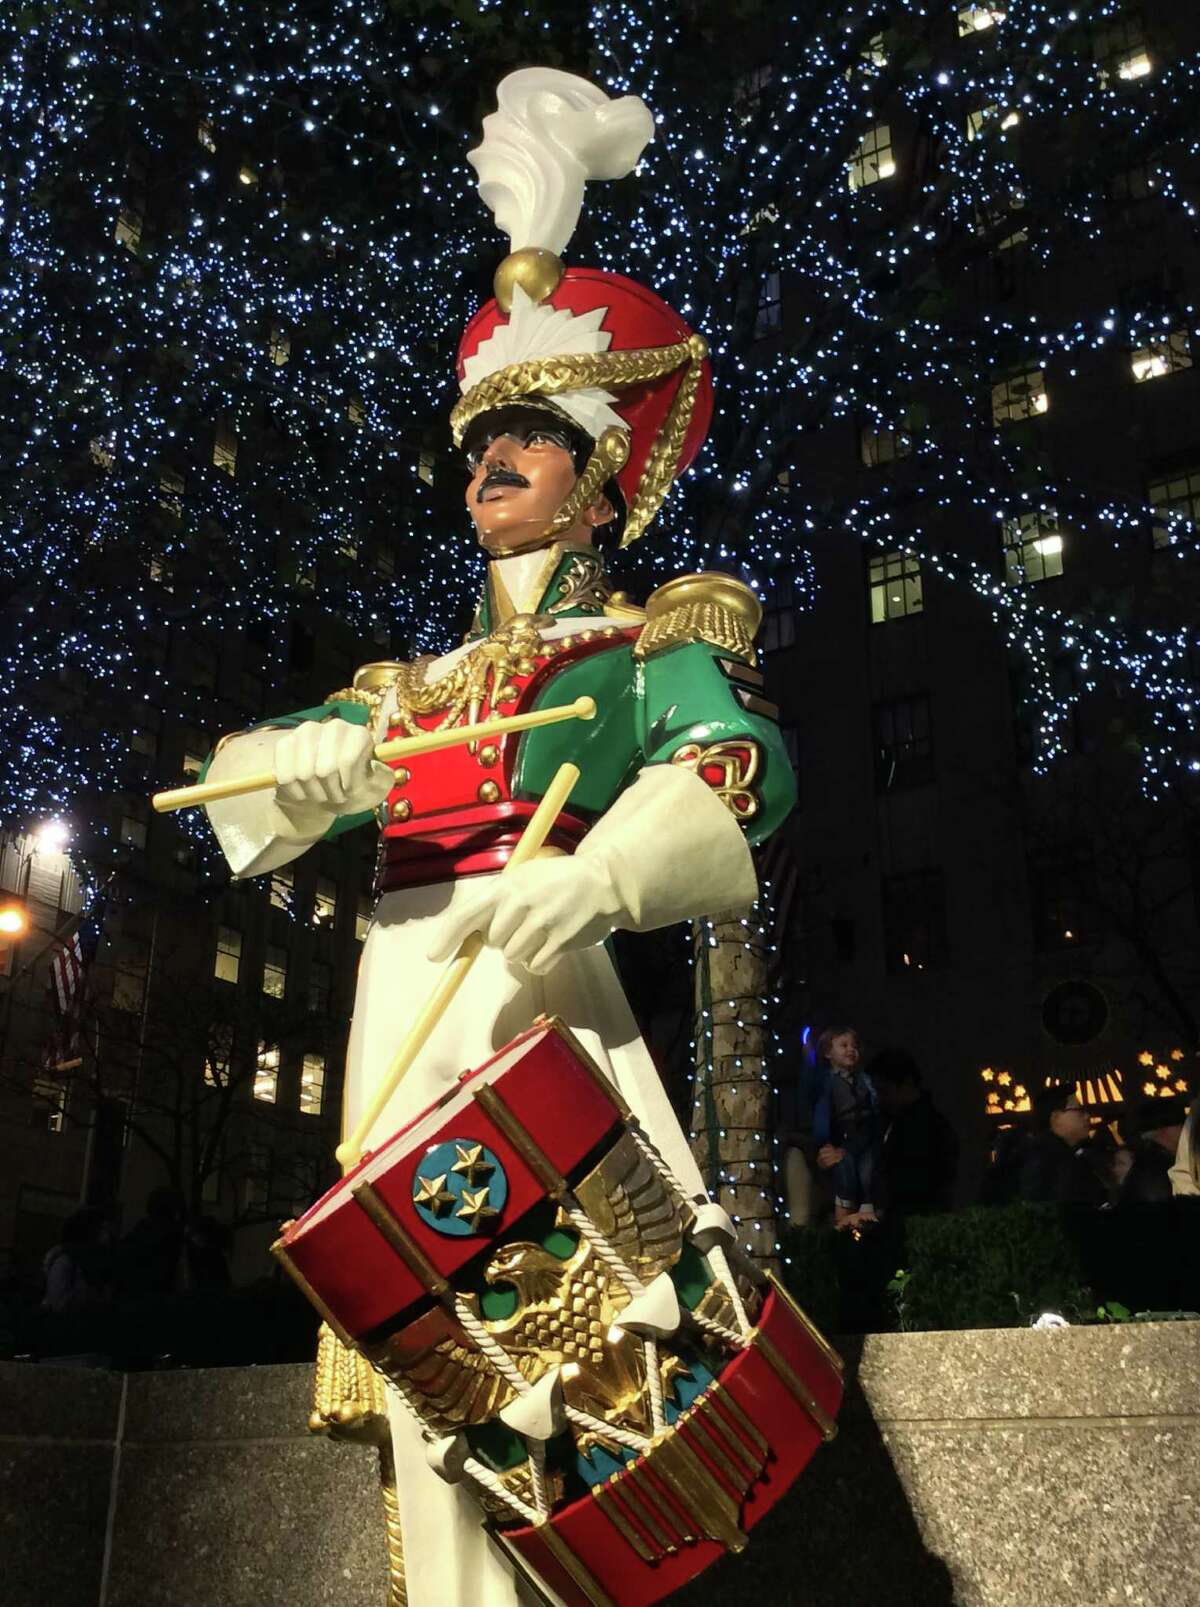 A drummer boy is spotted near the Rockefeller Center ice rink.